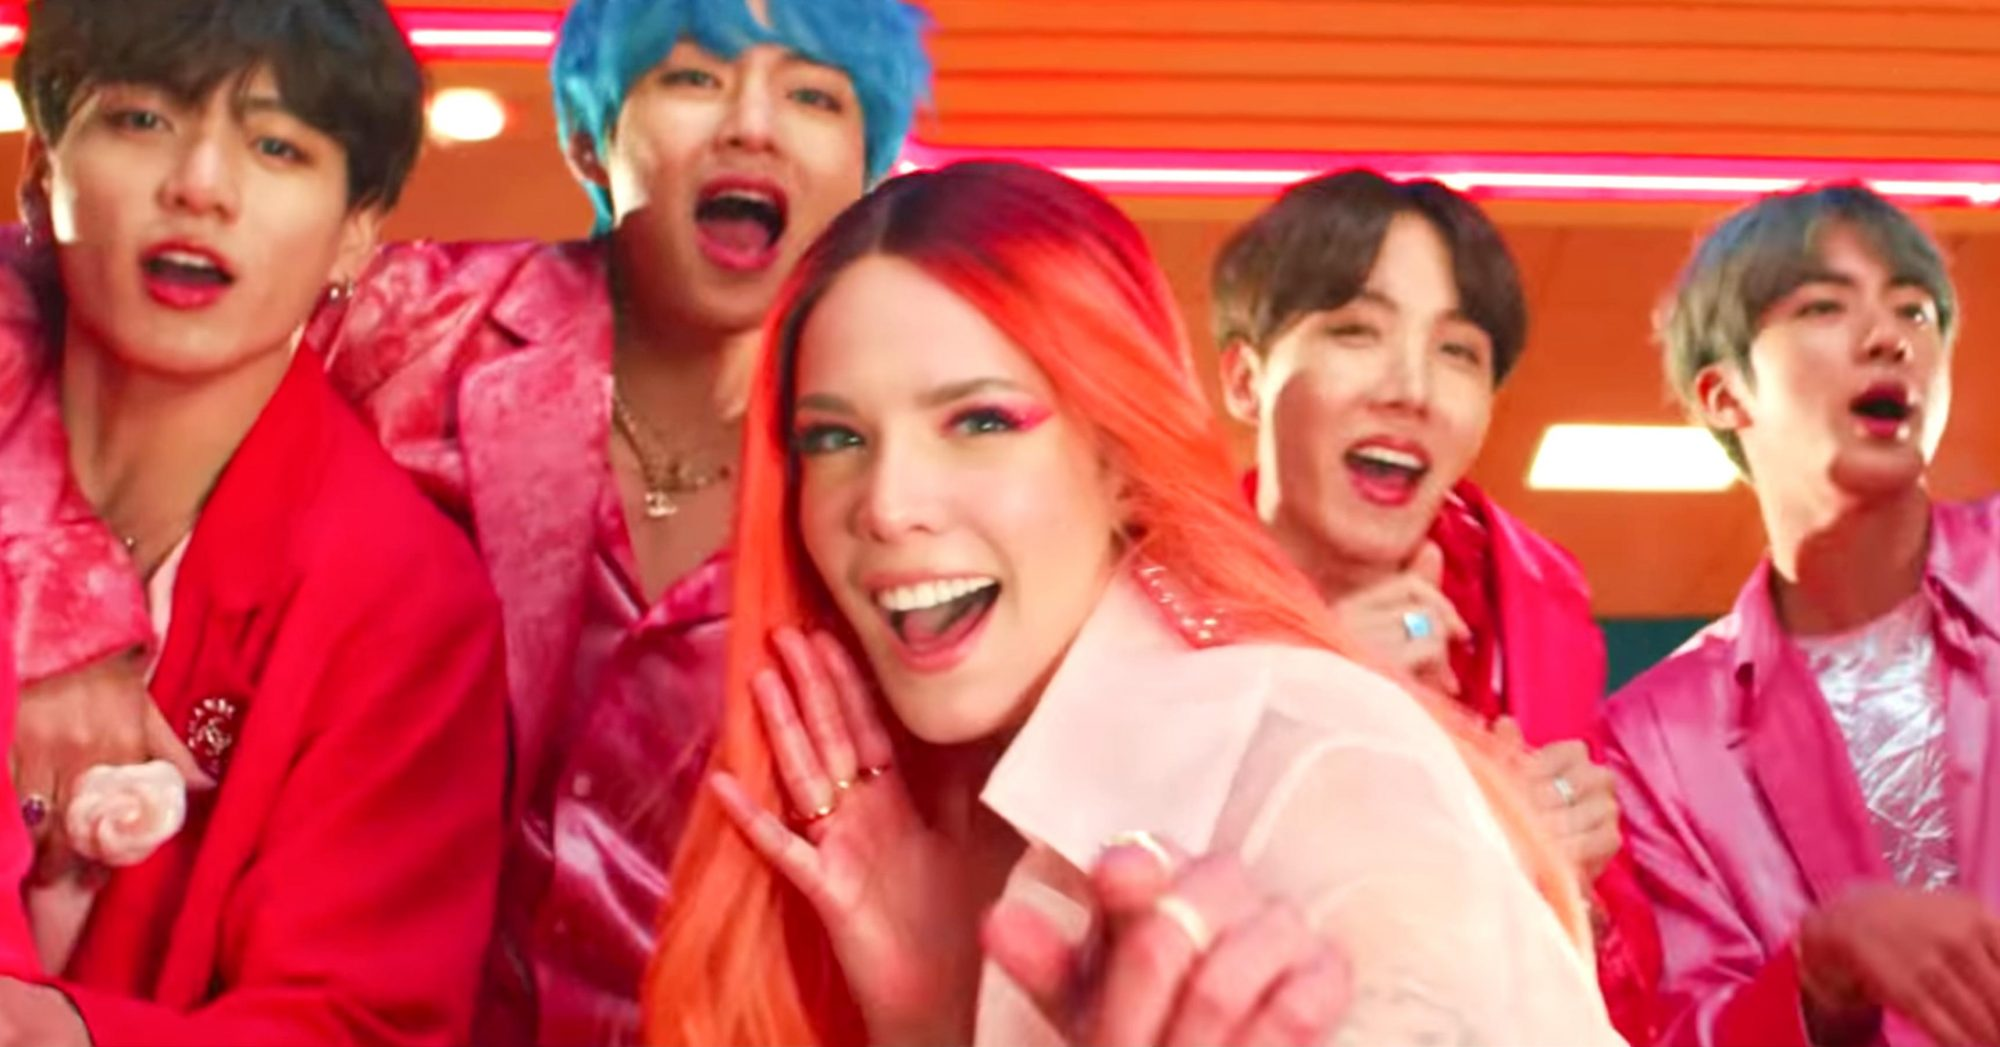 BTS (방탄소년단) '작은 것들을 위한 시 (Boy With Luv) feat. Halsey' Official MV (screen grab) CR: BTS/YouTube https://www.youtube.com/watch?v=XsX3ATc3FbA